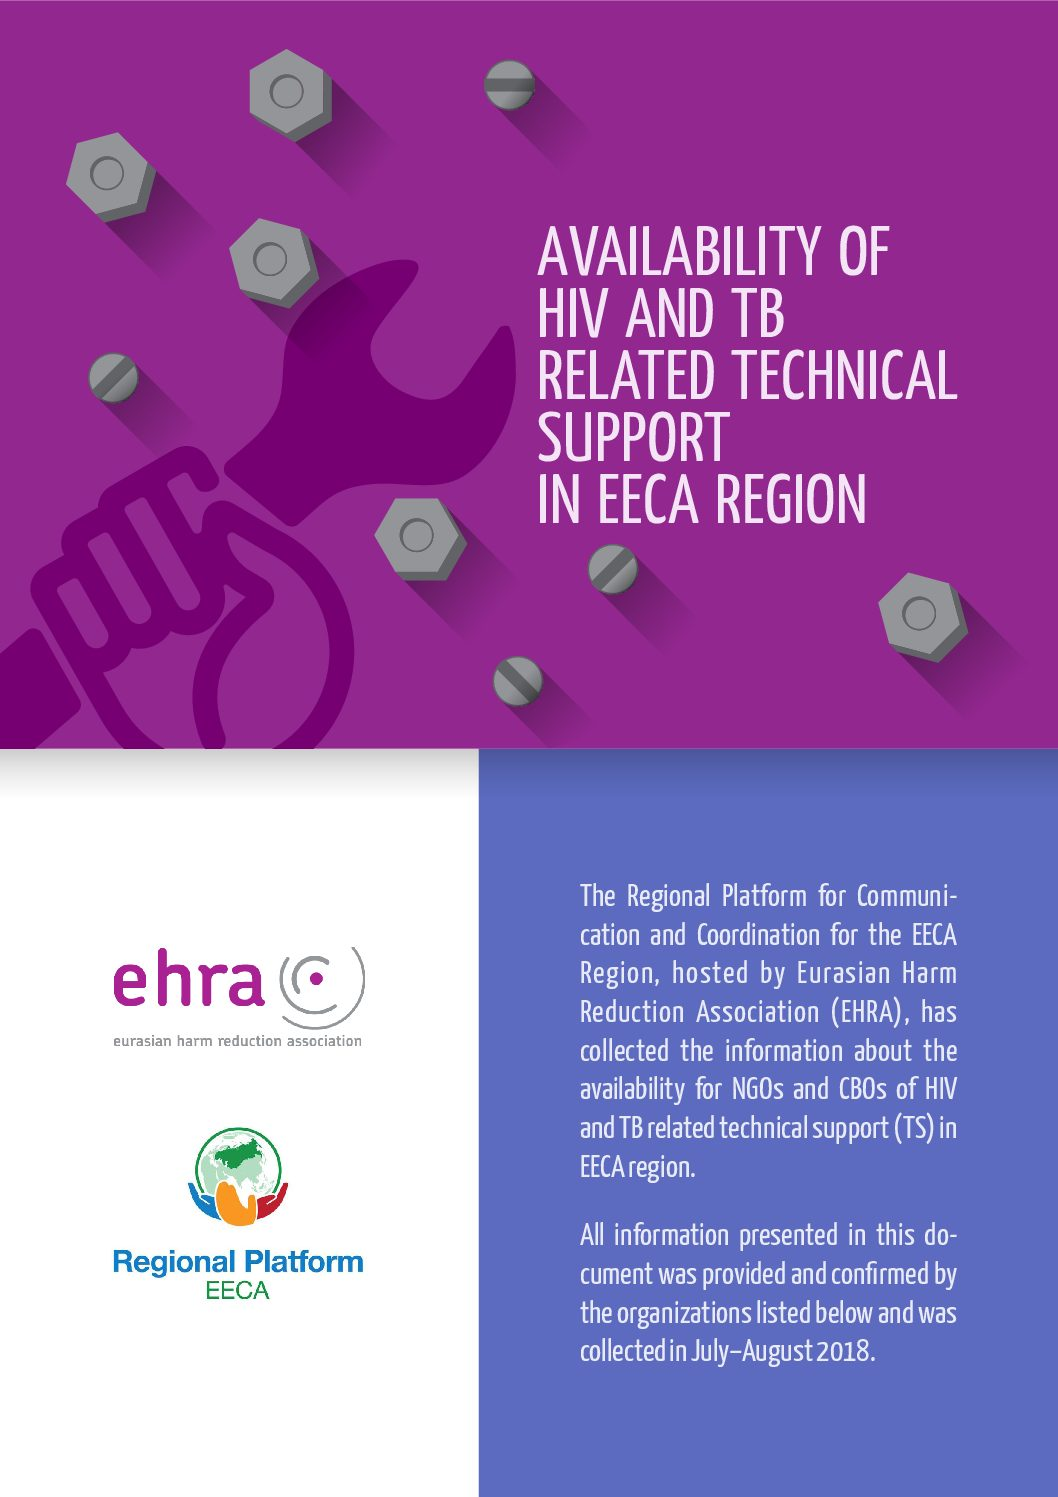 Availability of HIV and TB related technical support in EECA region